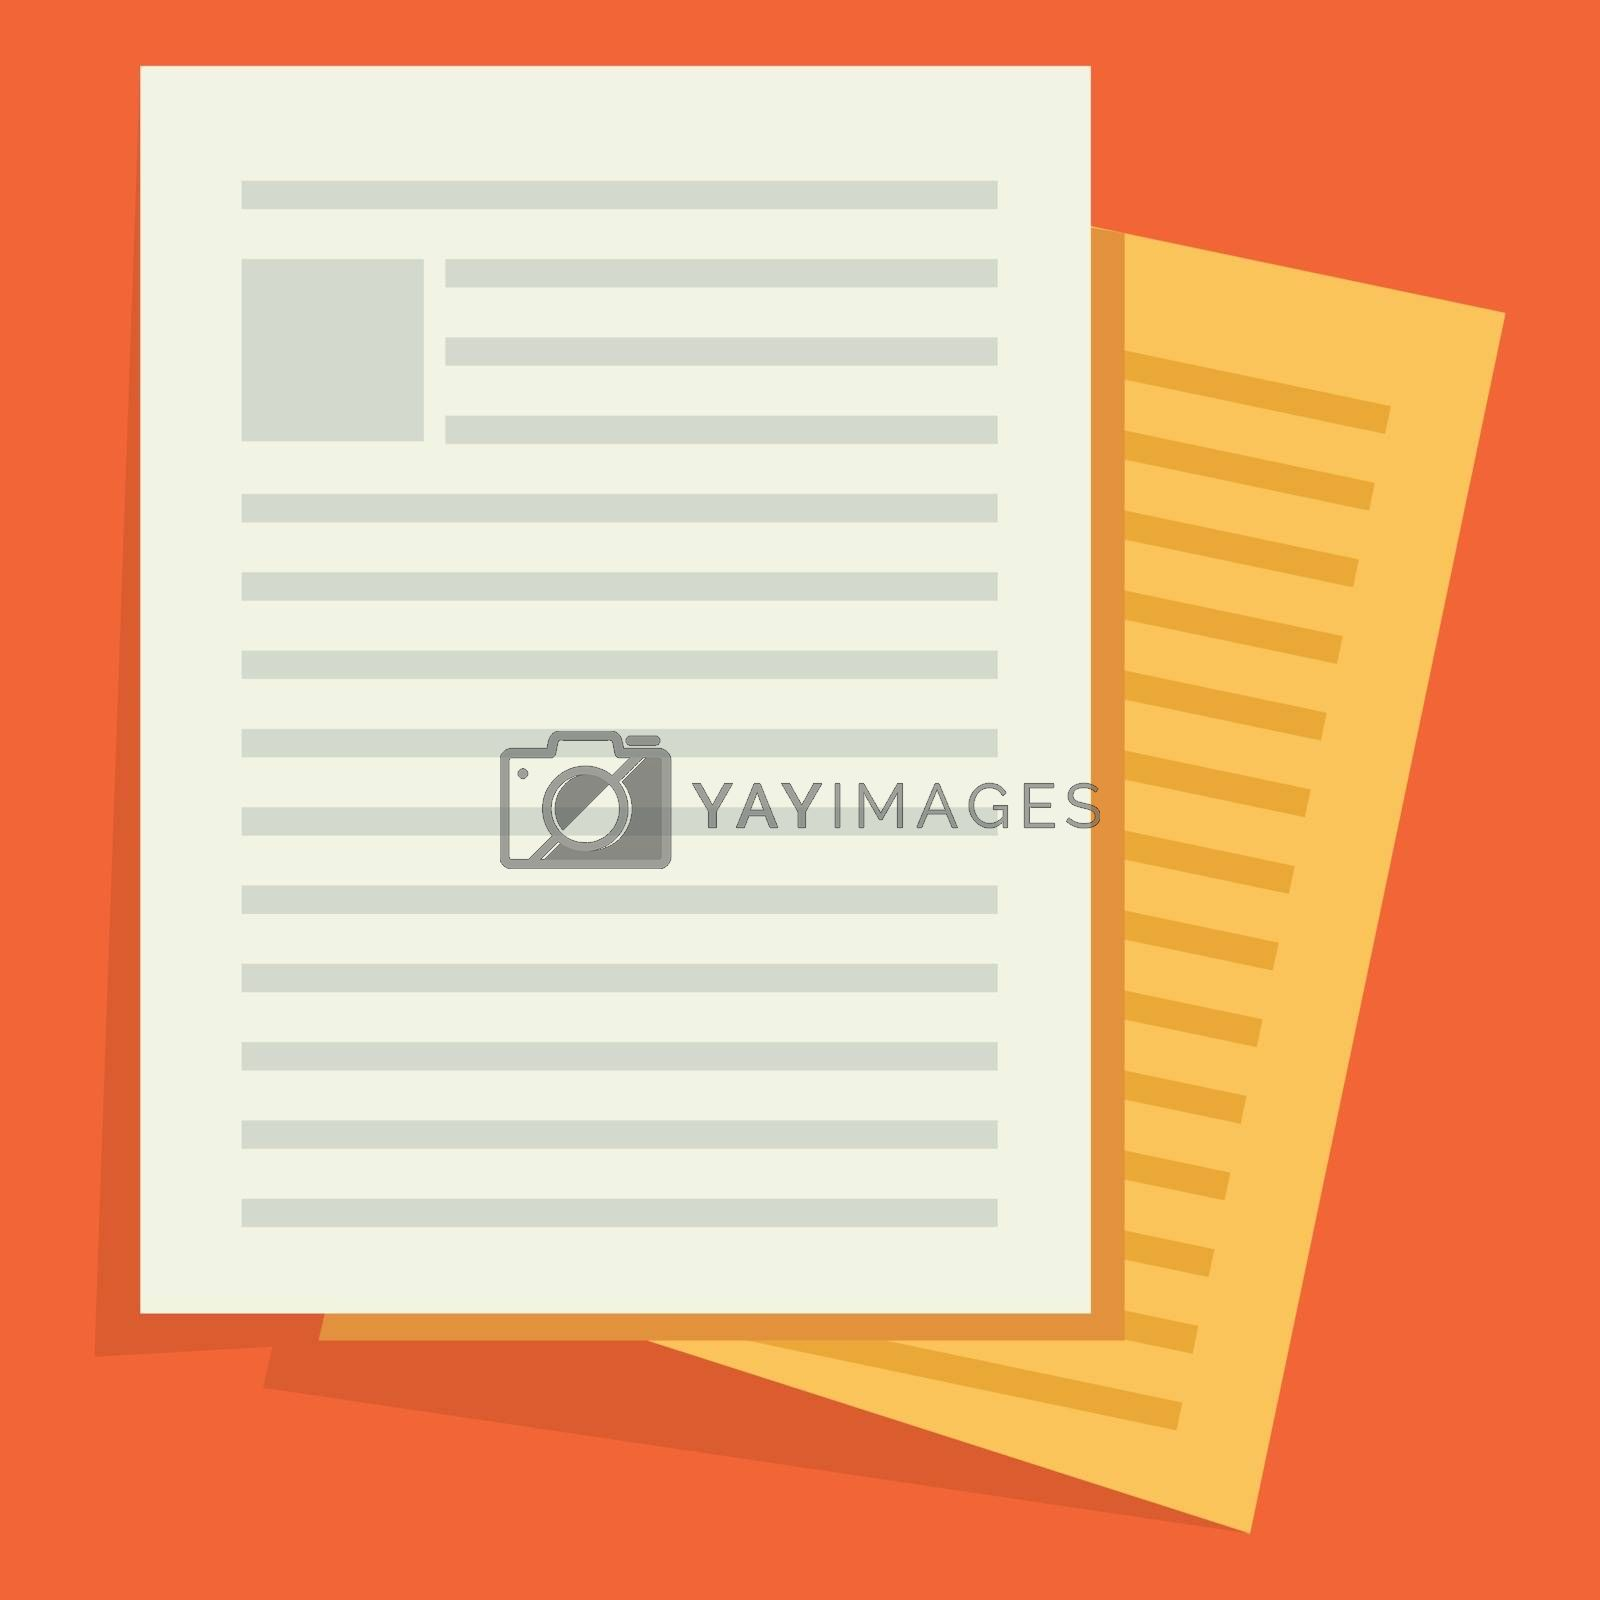 Documents icon. Stack of paper sheets. Confirmed or approved document. Flat illustration isolated on color background.